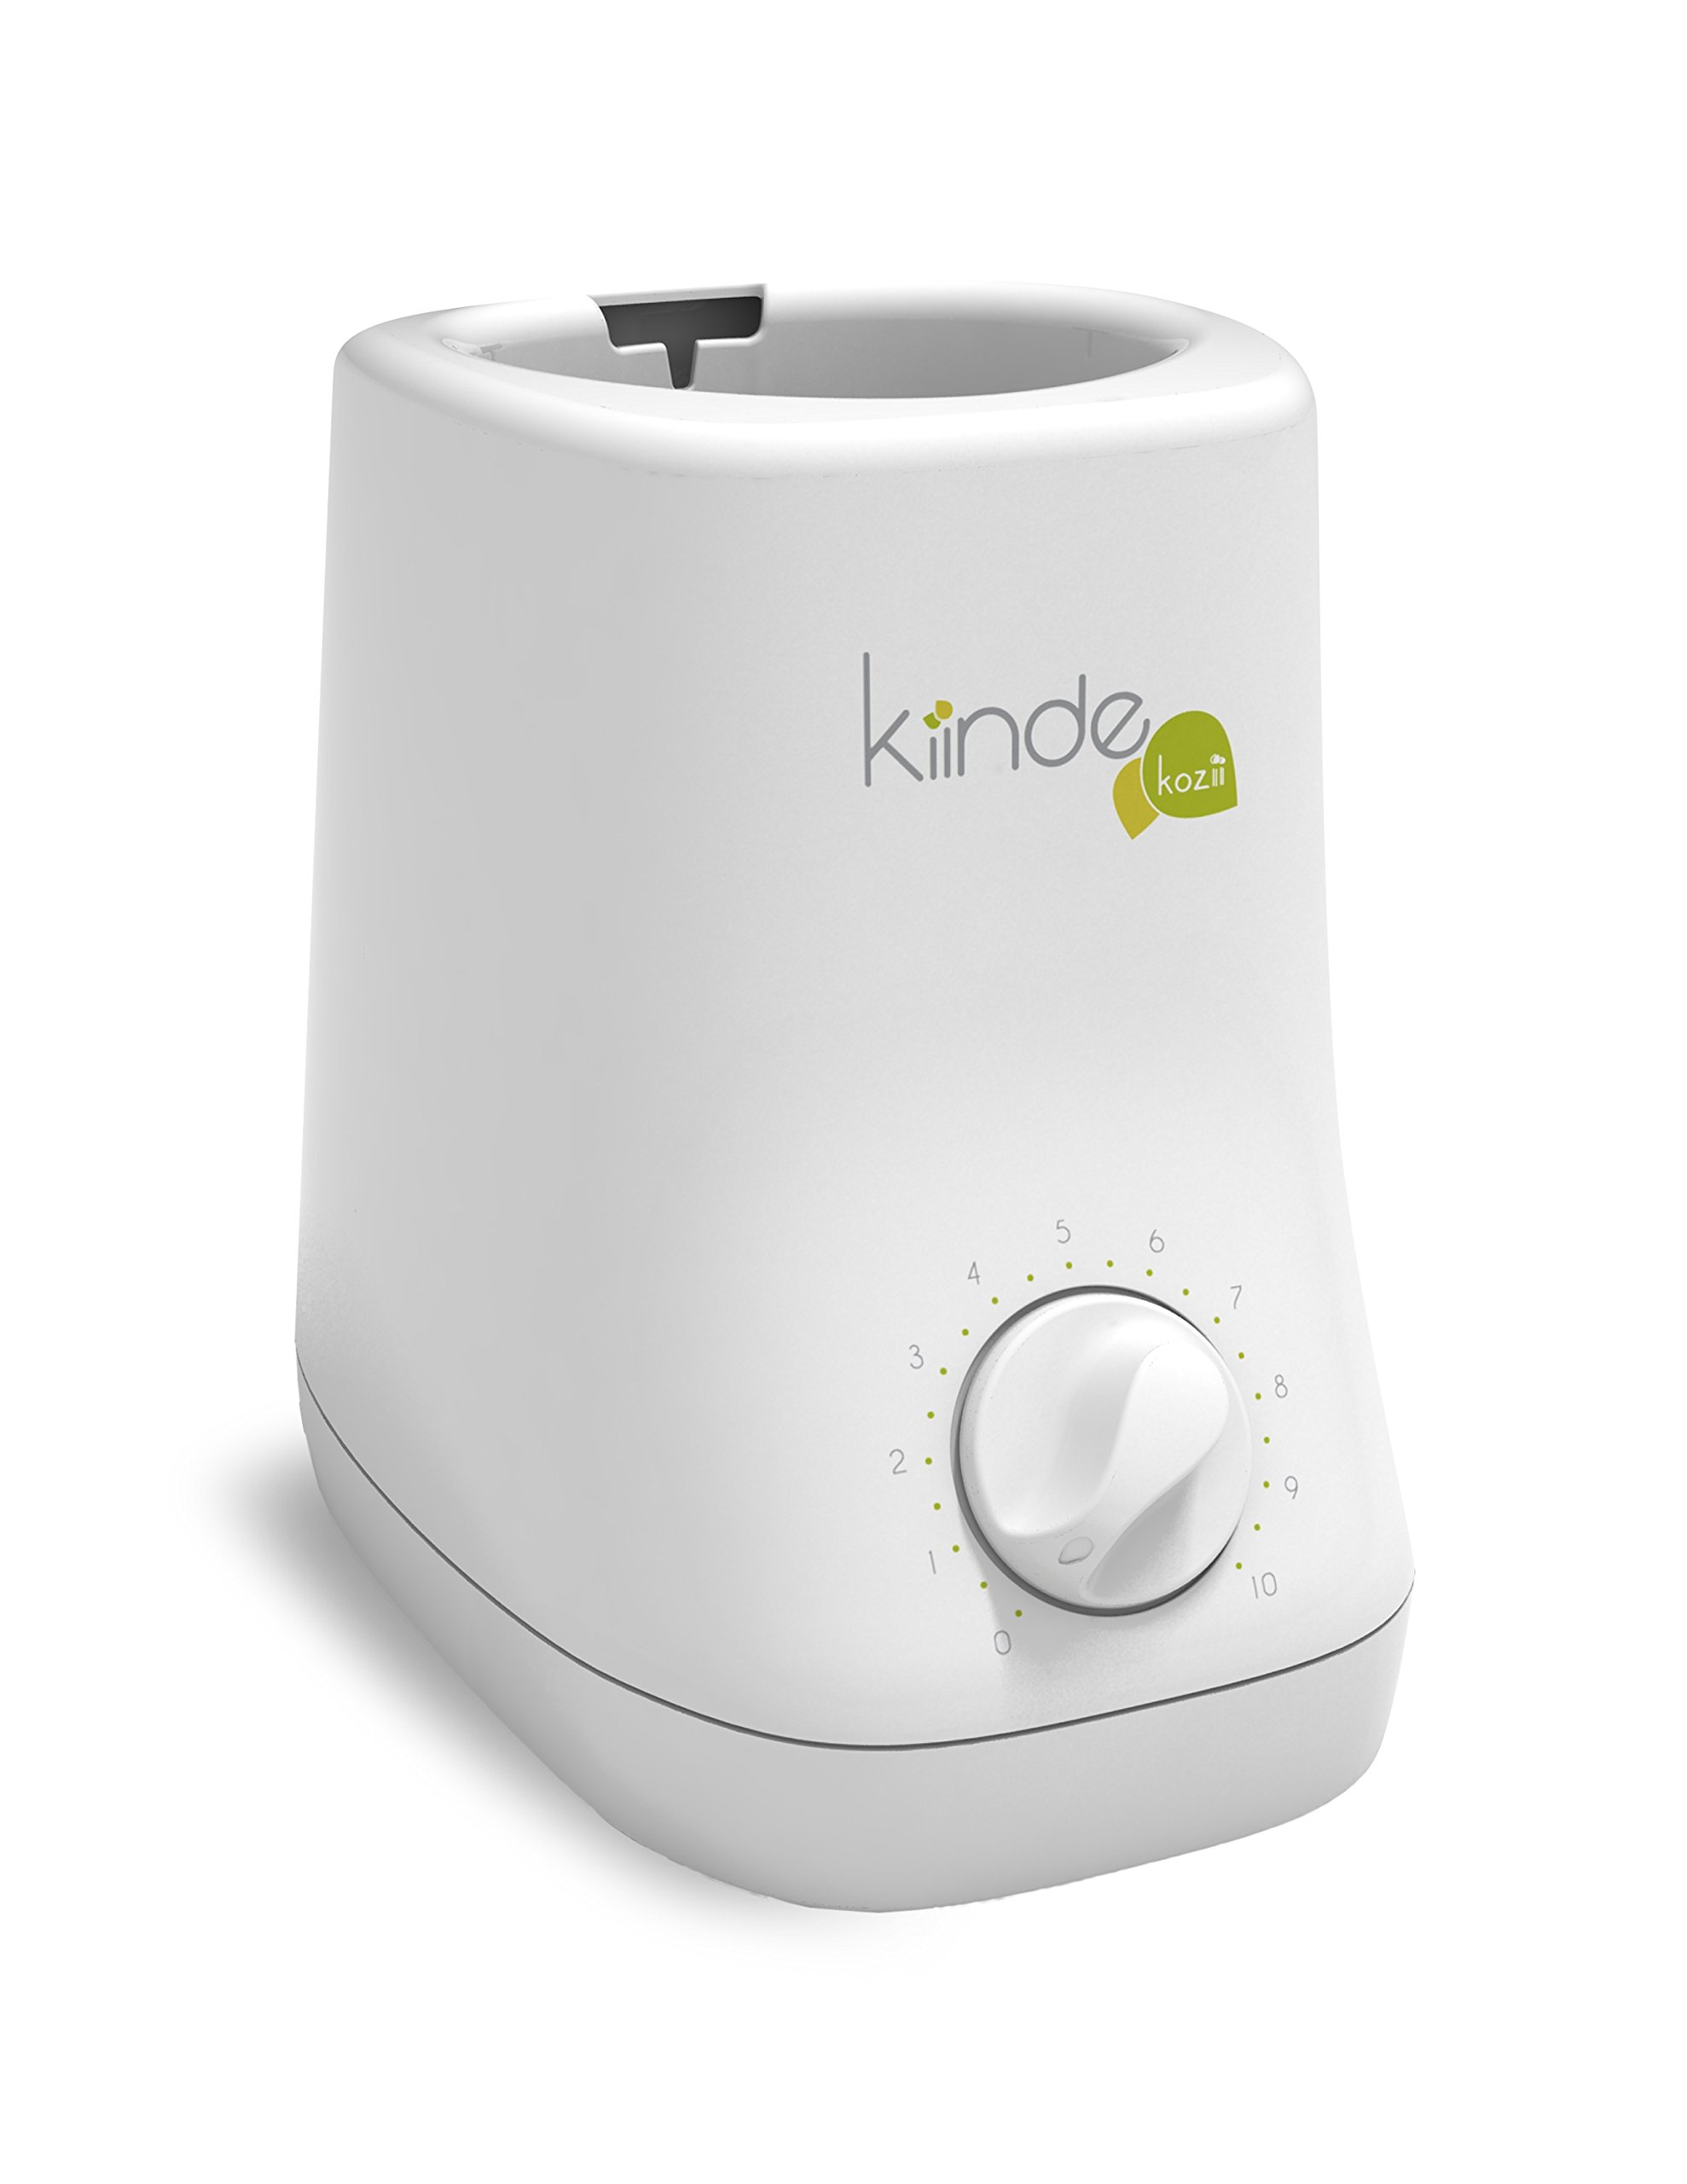 'Kiinde Kozii Bottle Warmer and Breast Milk Warmer' from the web at 'https://images-na.ssl-images-amazon.com/images/I/71-h49CoVNL.jpg'